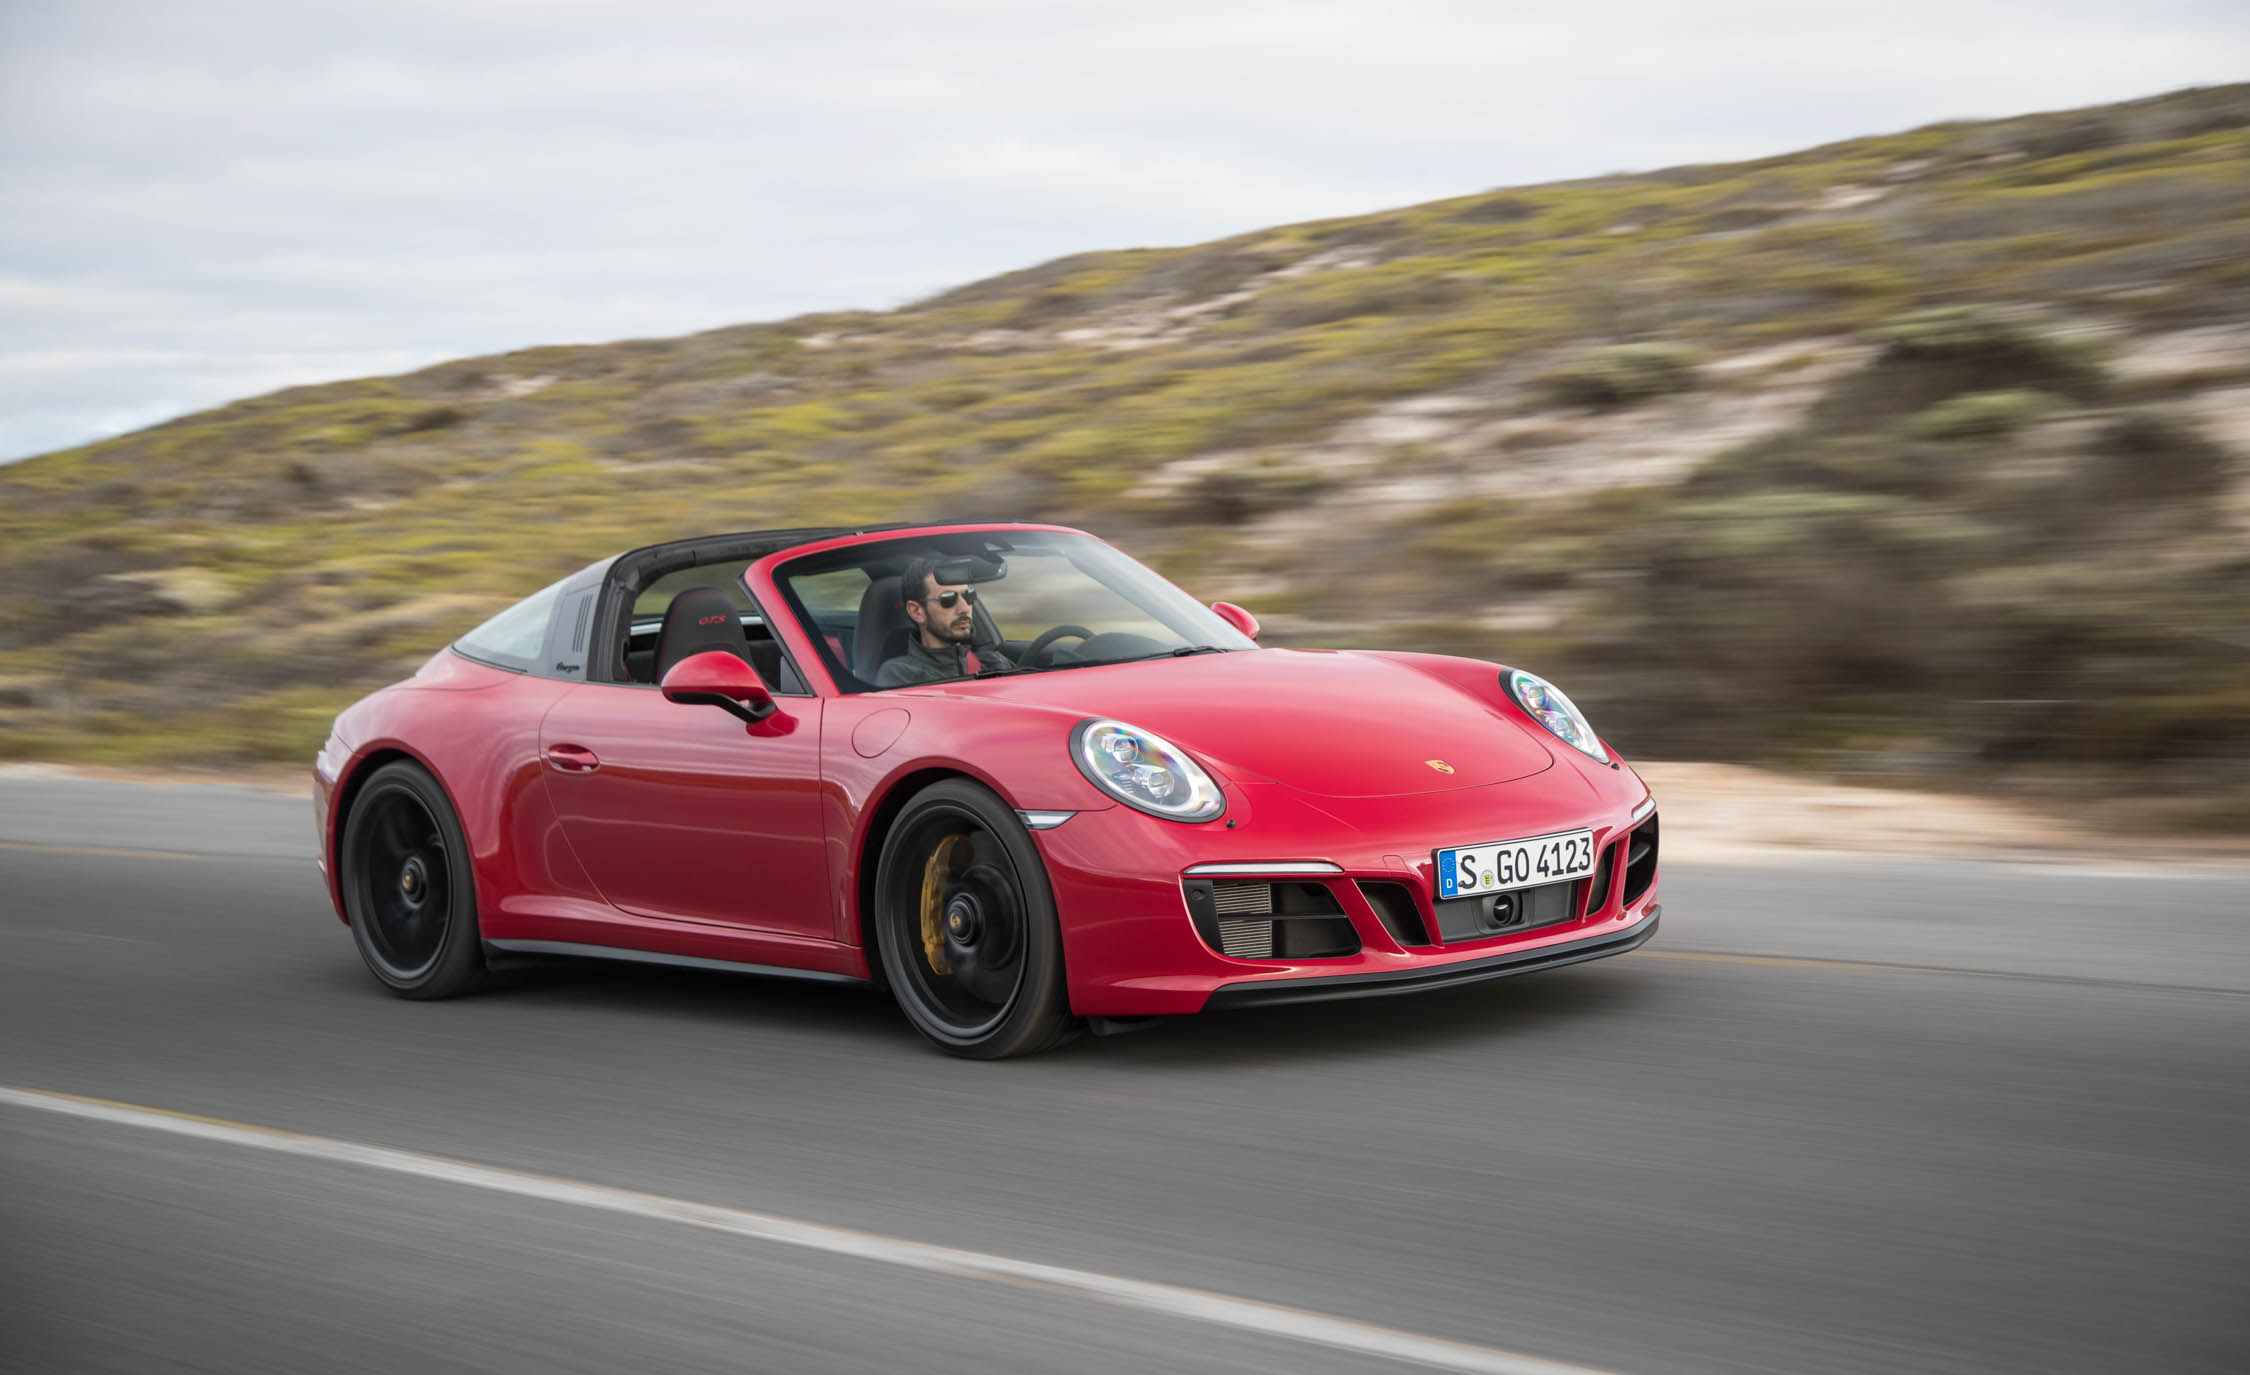 2017 Porsche 911 Targa 4 GTS Red Test Drive (Photo 84 of 97)